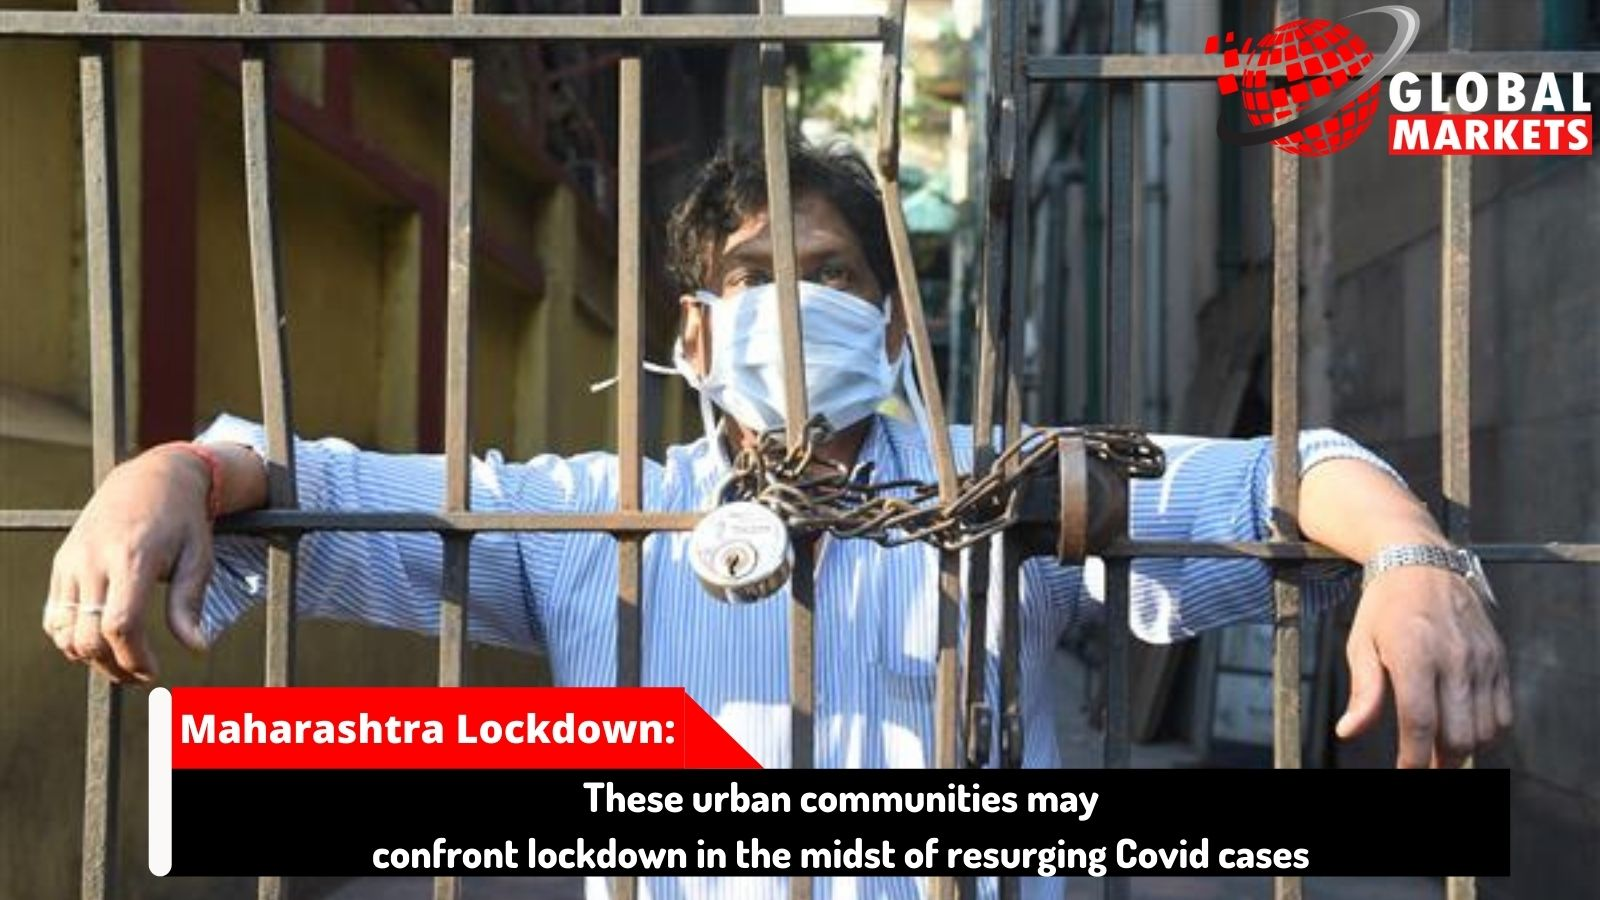 These Maharashtra urban communities may confront lockdown in the midst of resurging Covid cases